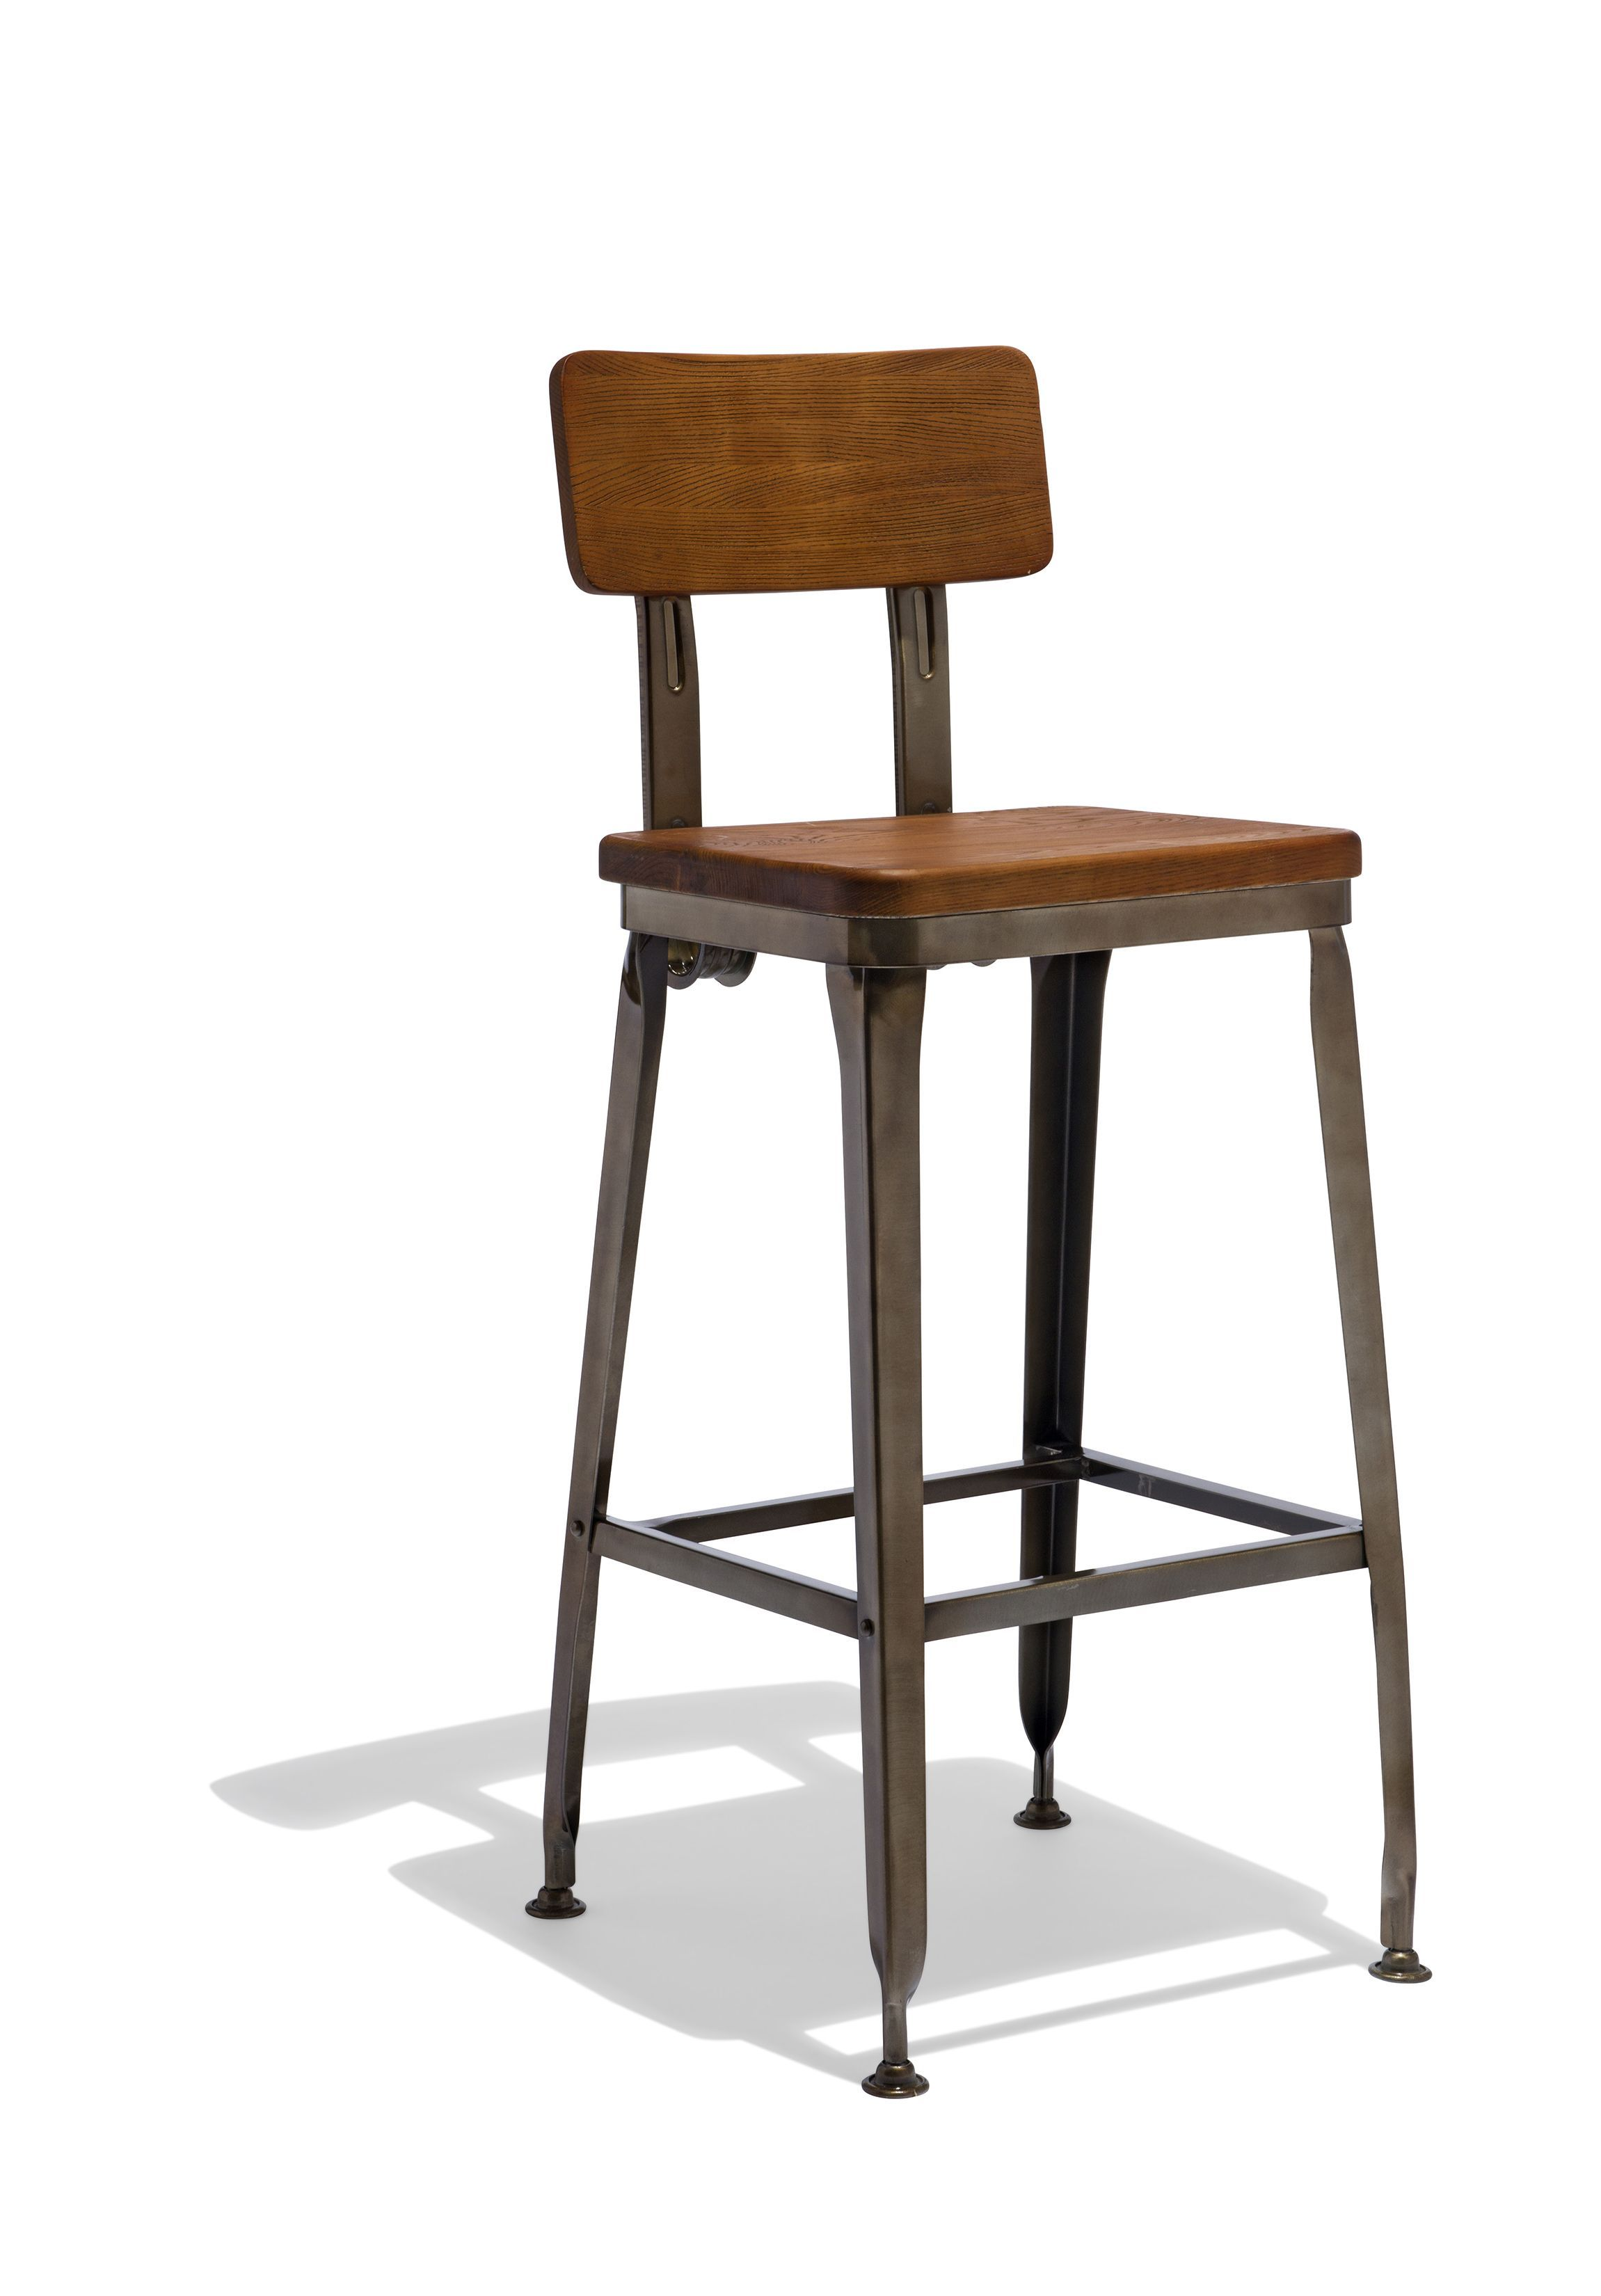 Octane Counter Stool With A Wood Seat Farmhouse Bar Stools Rustic Bar Stools Counter Stools